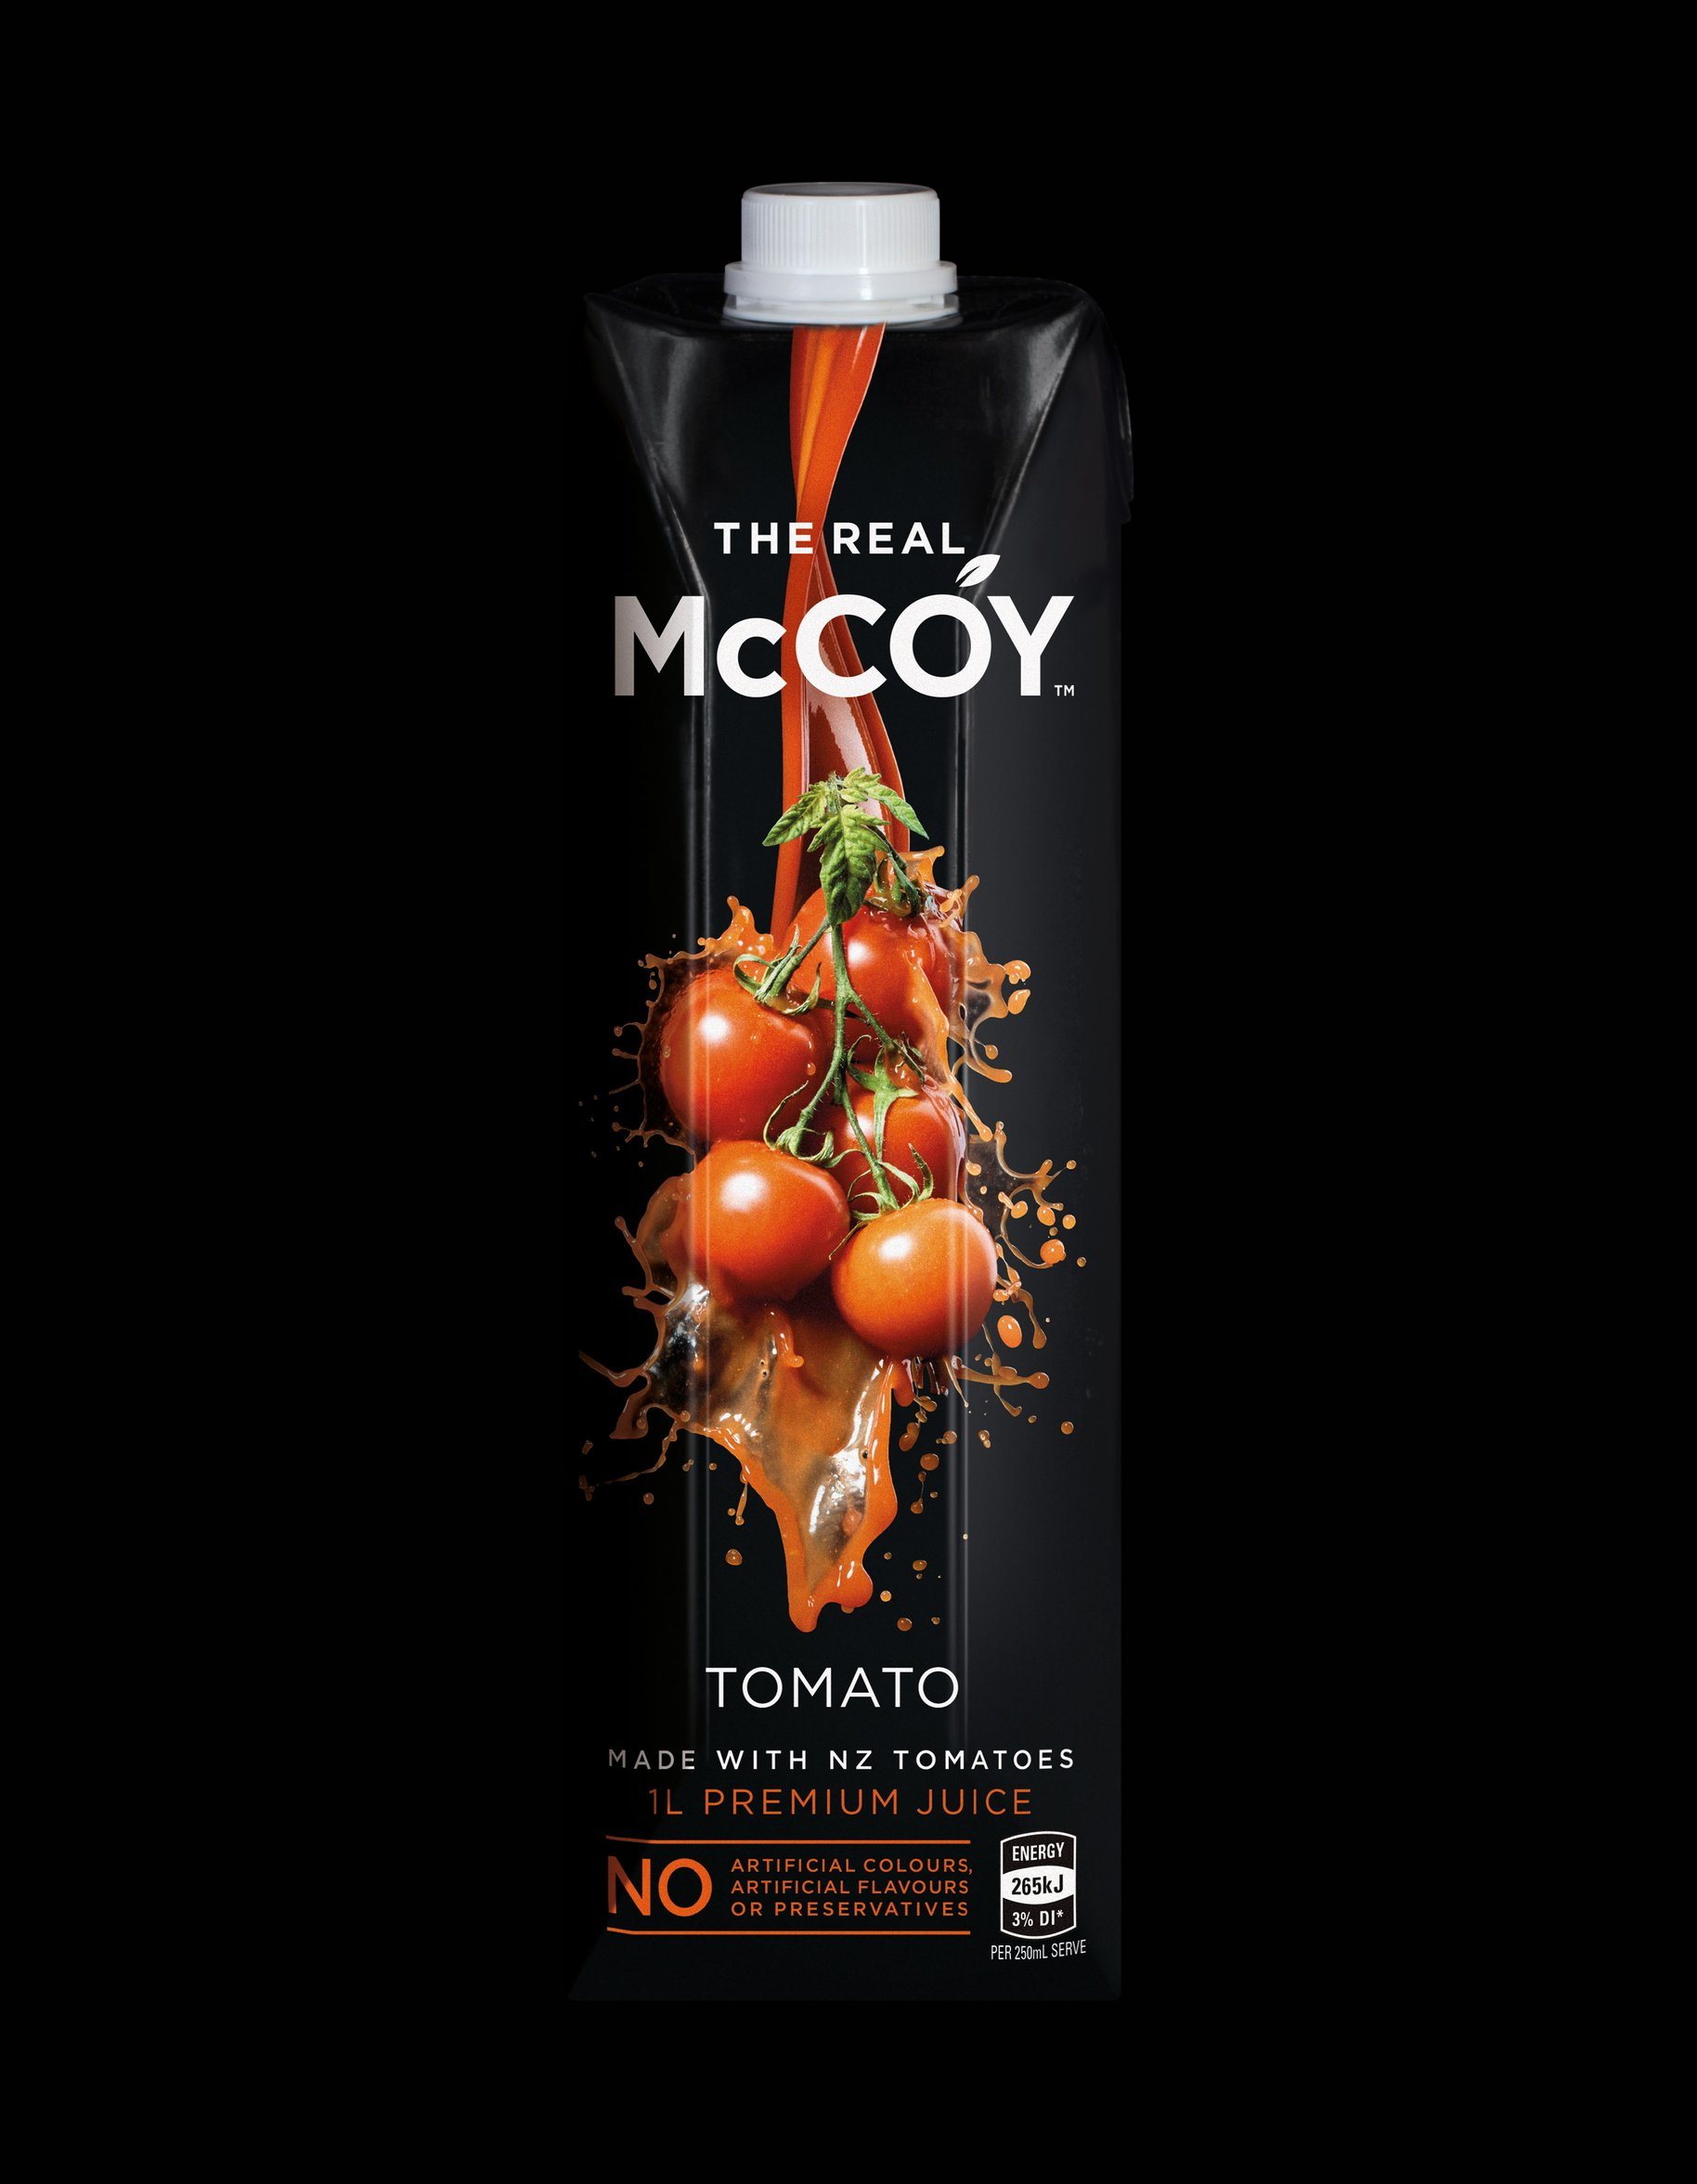 McCoy 1L tetra tomato juice packaging